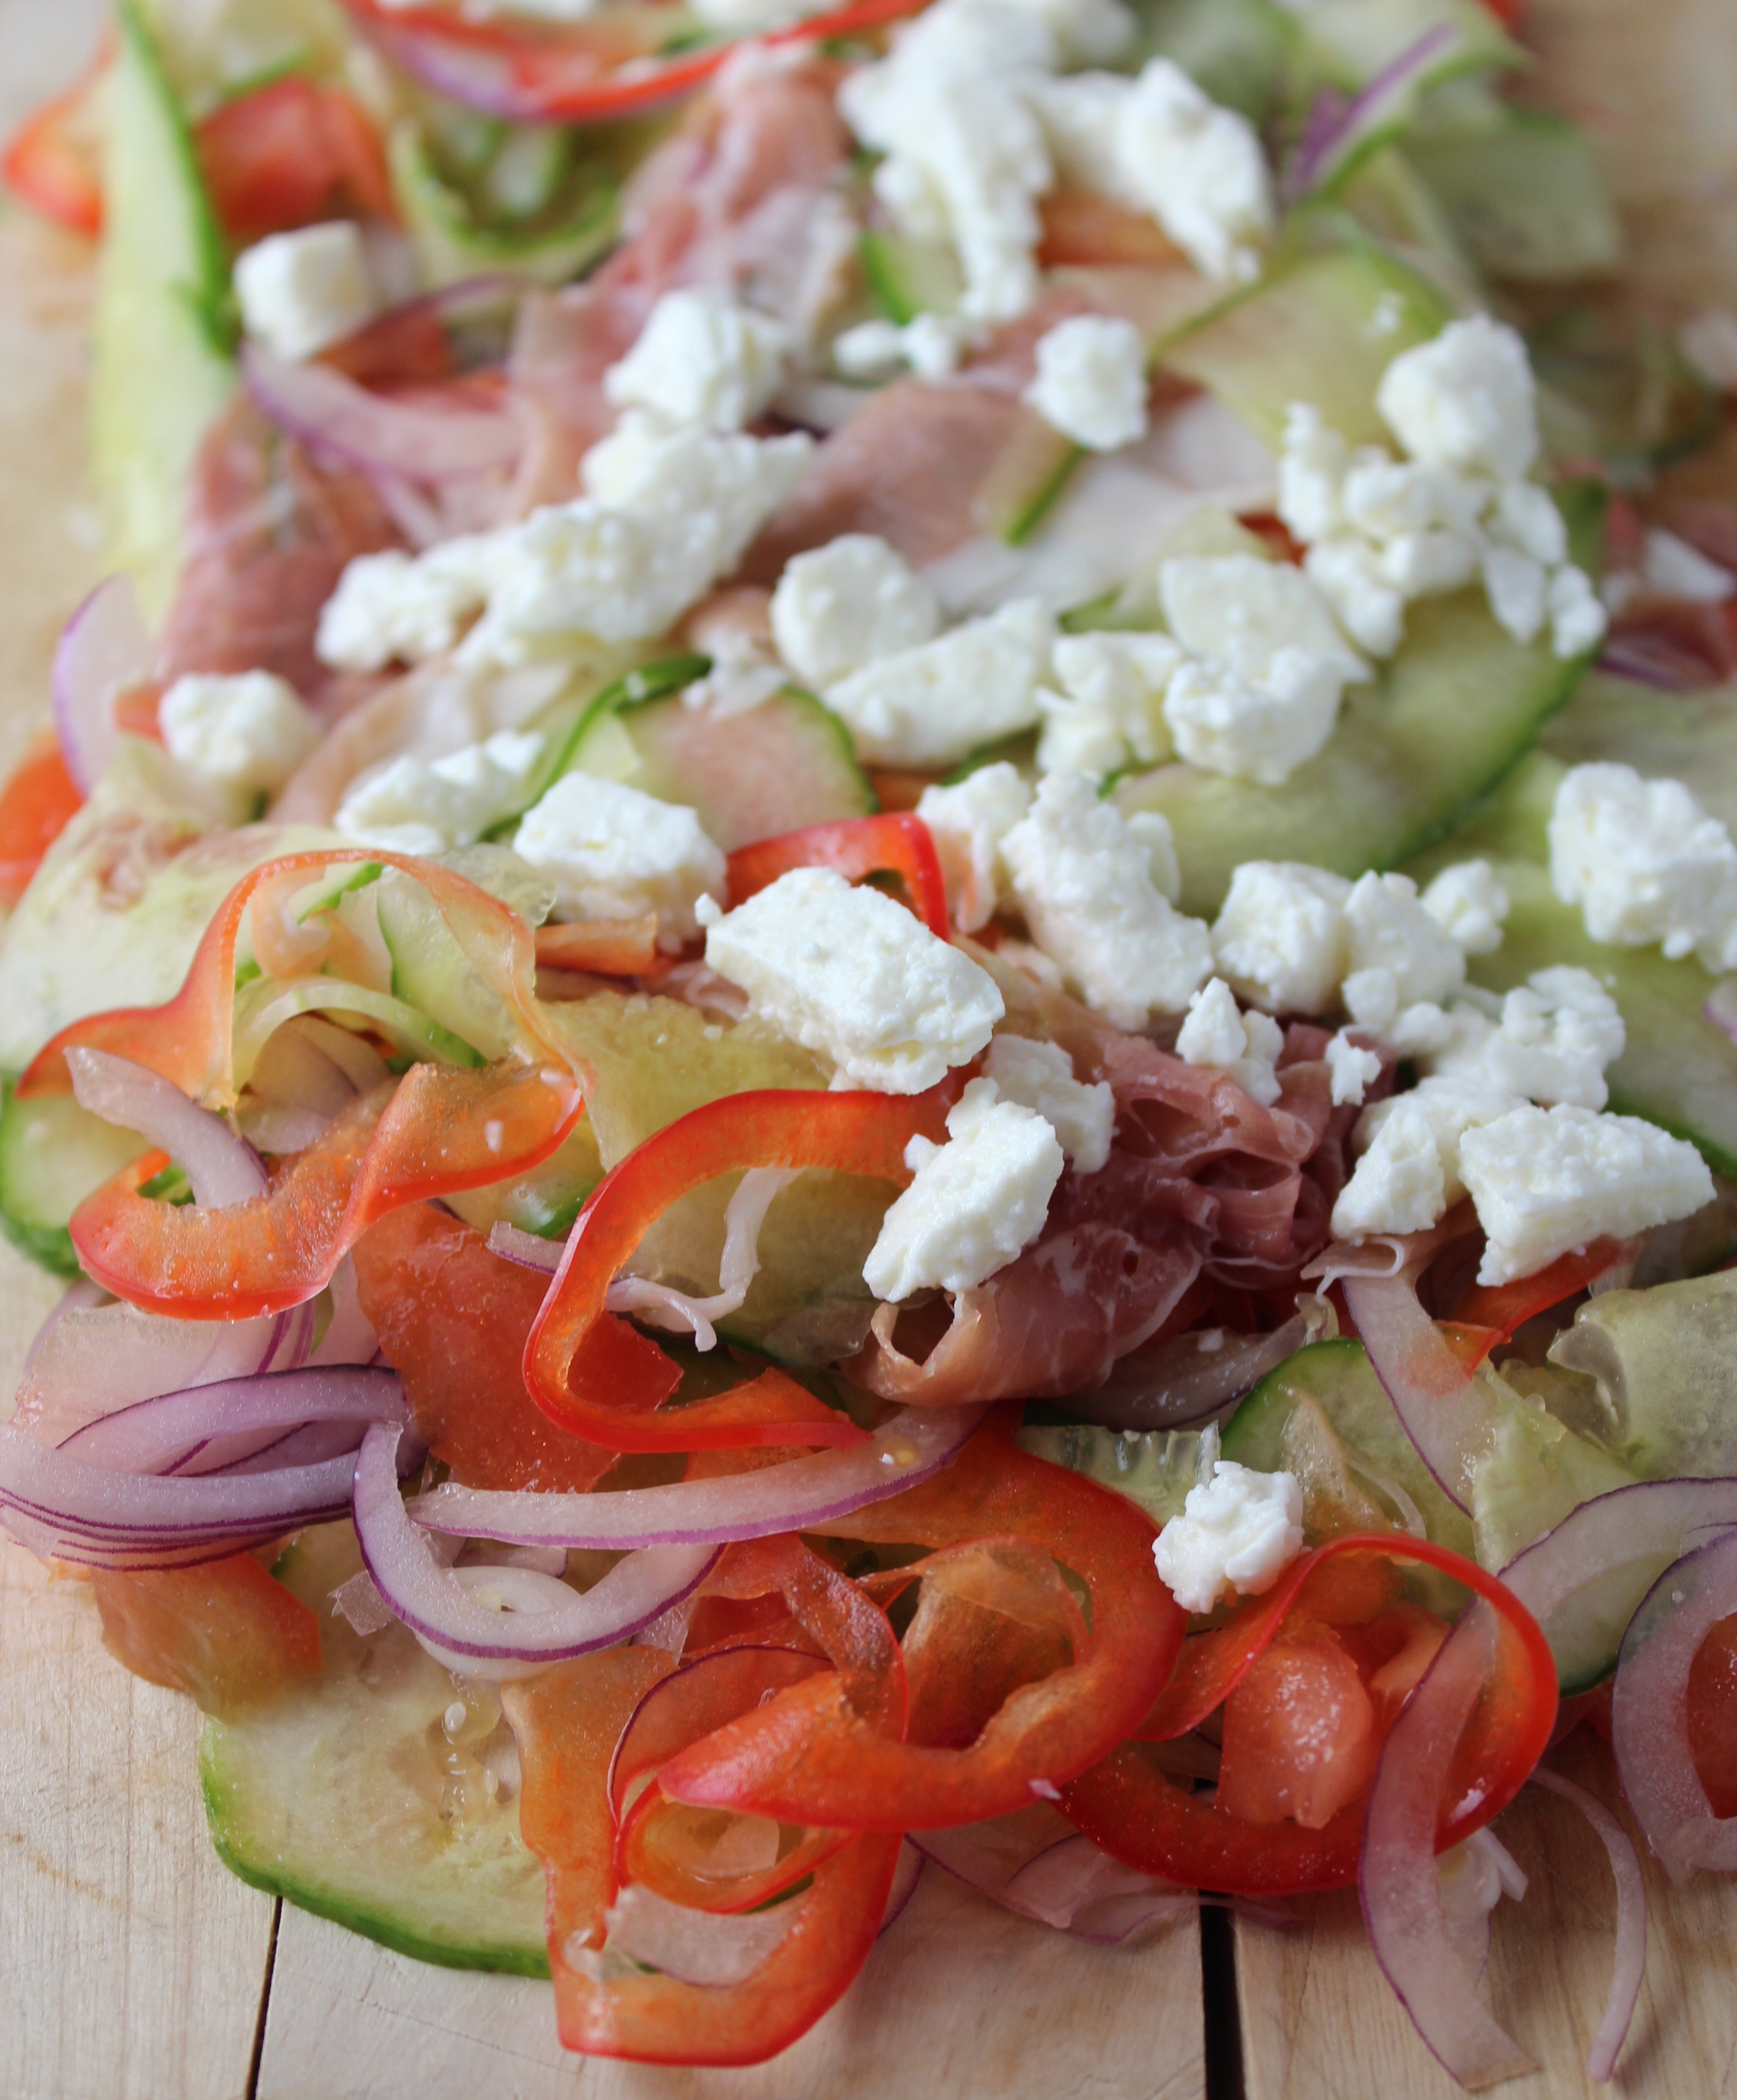 cucumber prosciutto salad, greek salad, greek prosciutto salad, cucumber ribbons, spiral slicer, greek vinaigrette salad dressing, homemade greek vinaigrette, homemade greek salad dressing, recipes, food